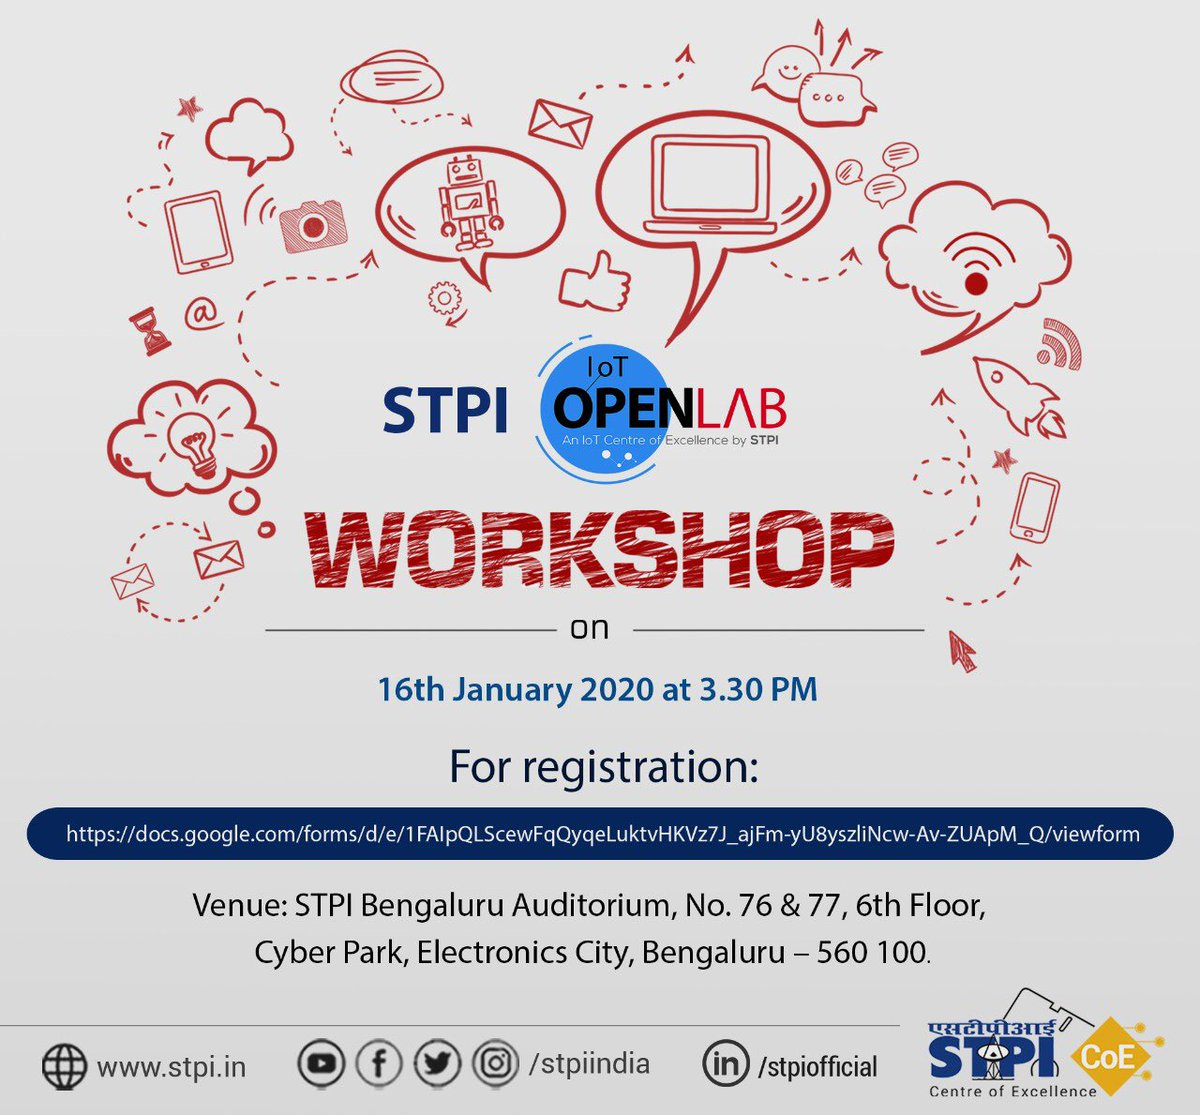 #STPIIoTOpenLab is conducting a workshop on 16th January 2020 at @STPIBengaluru. Hurry up and register your candidature to access the workshop conducted by industry experts in #IoT domain and gain hands-on experience. #STPICoEs  https:// docs.google.com/forms/d/e/1FAI pQLScewFqQyqeLuktvHKVz7J_ajFm-yU8yszliNcw-Av-ZUApM_Q/viewform  … <br>http://pic.twitter.com/o3dWkoi1h3